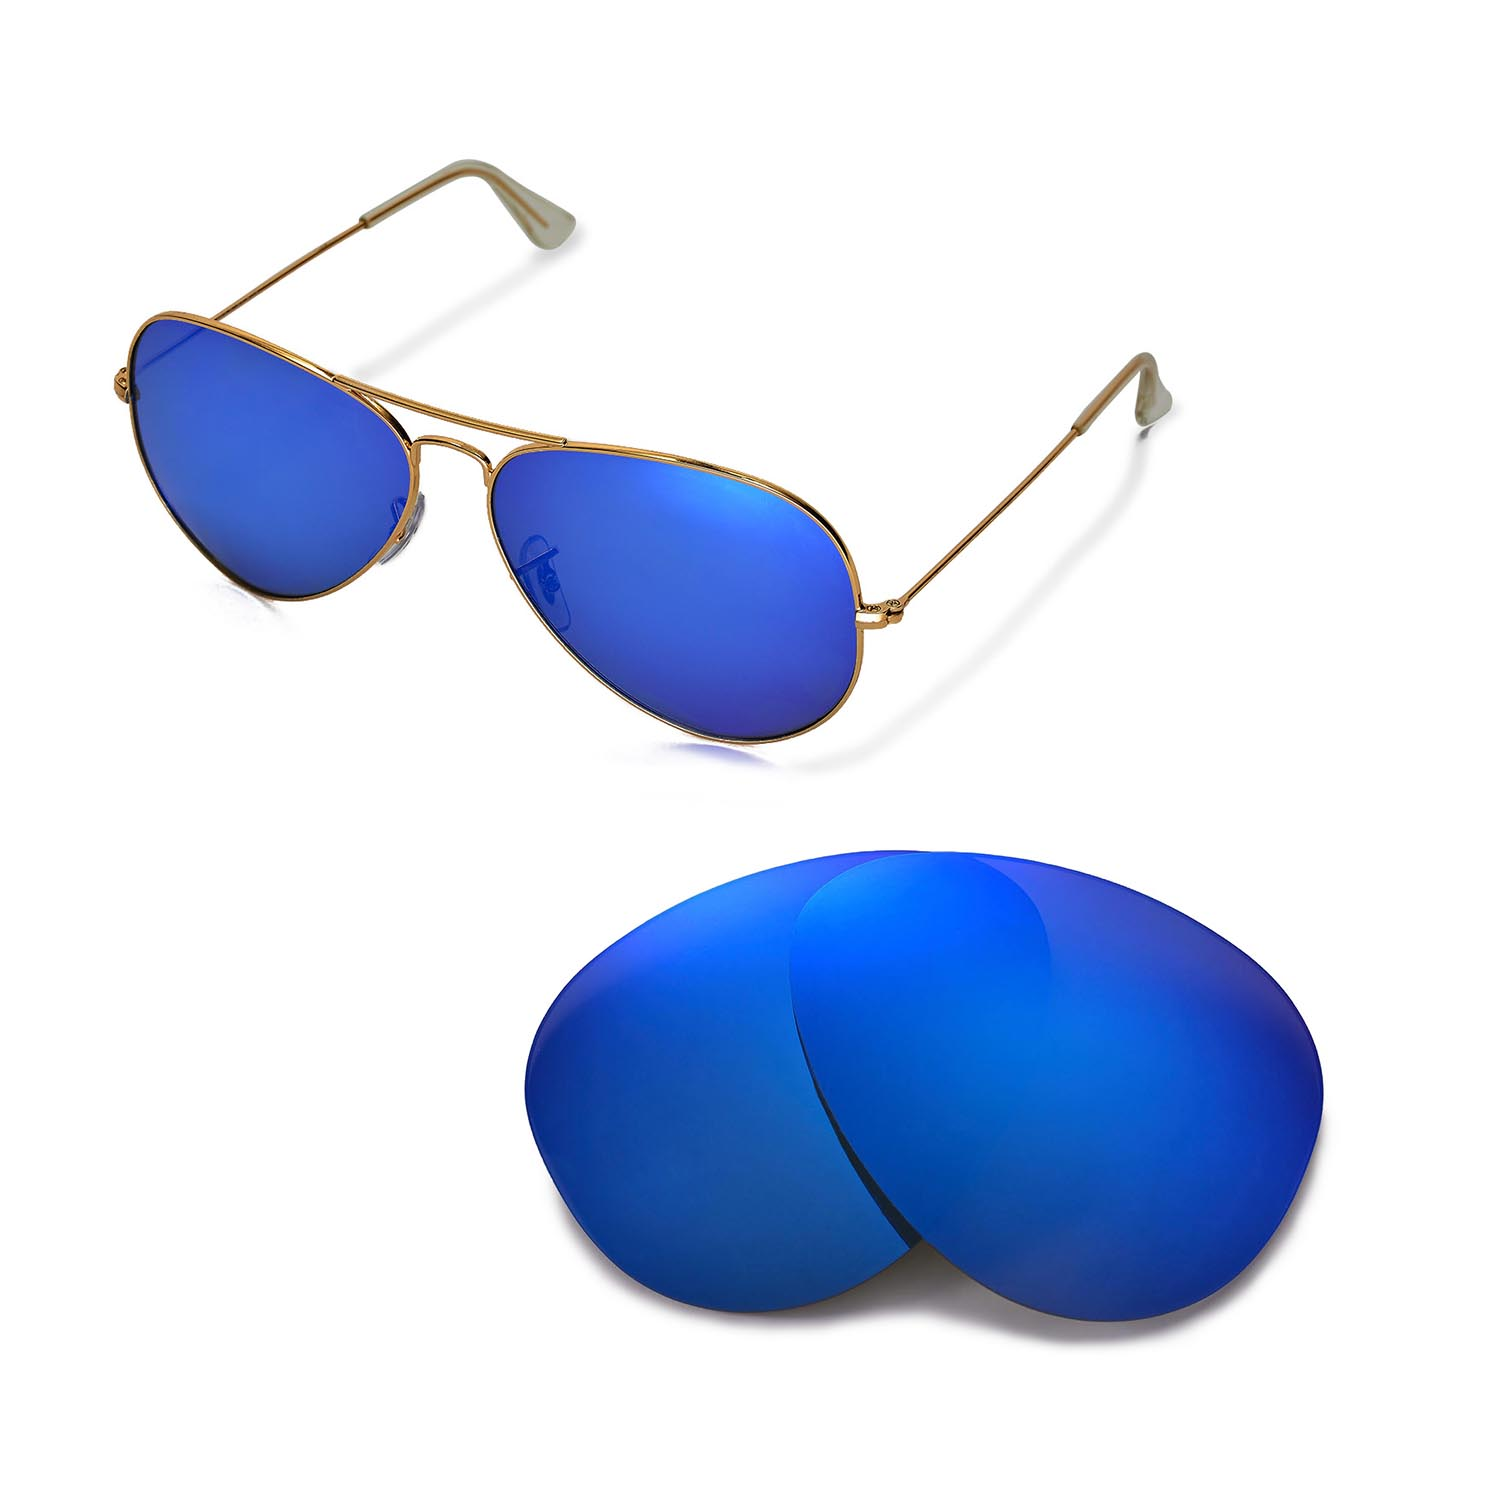 ray ban aviator black frame blue lens  New WL Polarized Ice Blue Lenses For Ray-Ban Aviator Large Metal ...